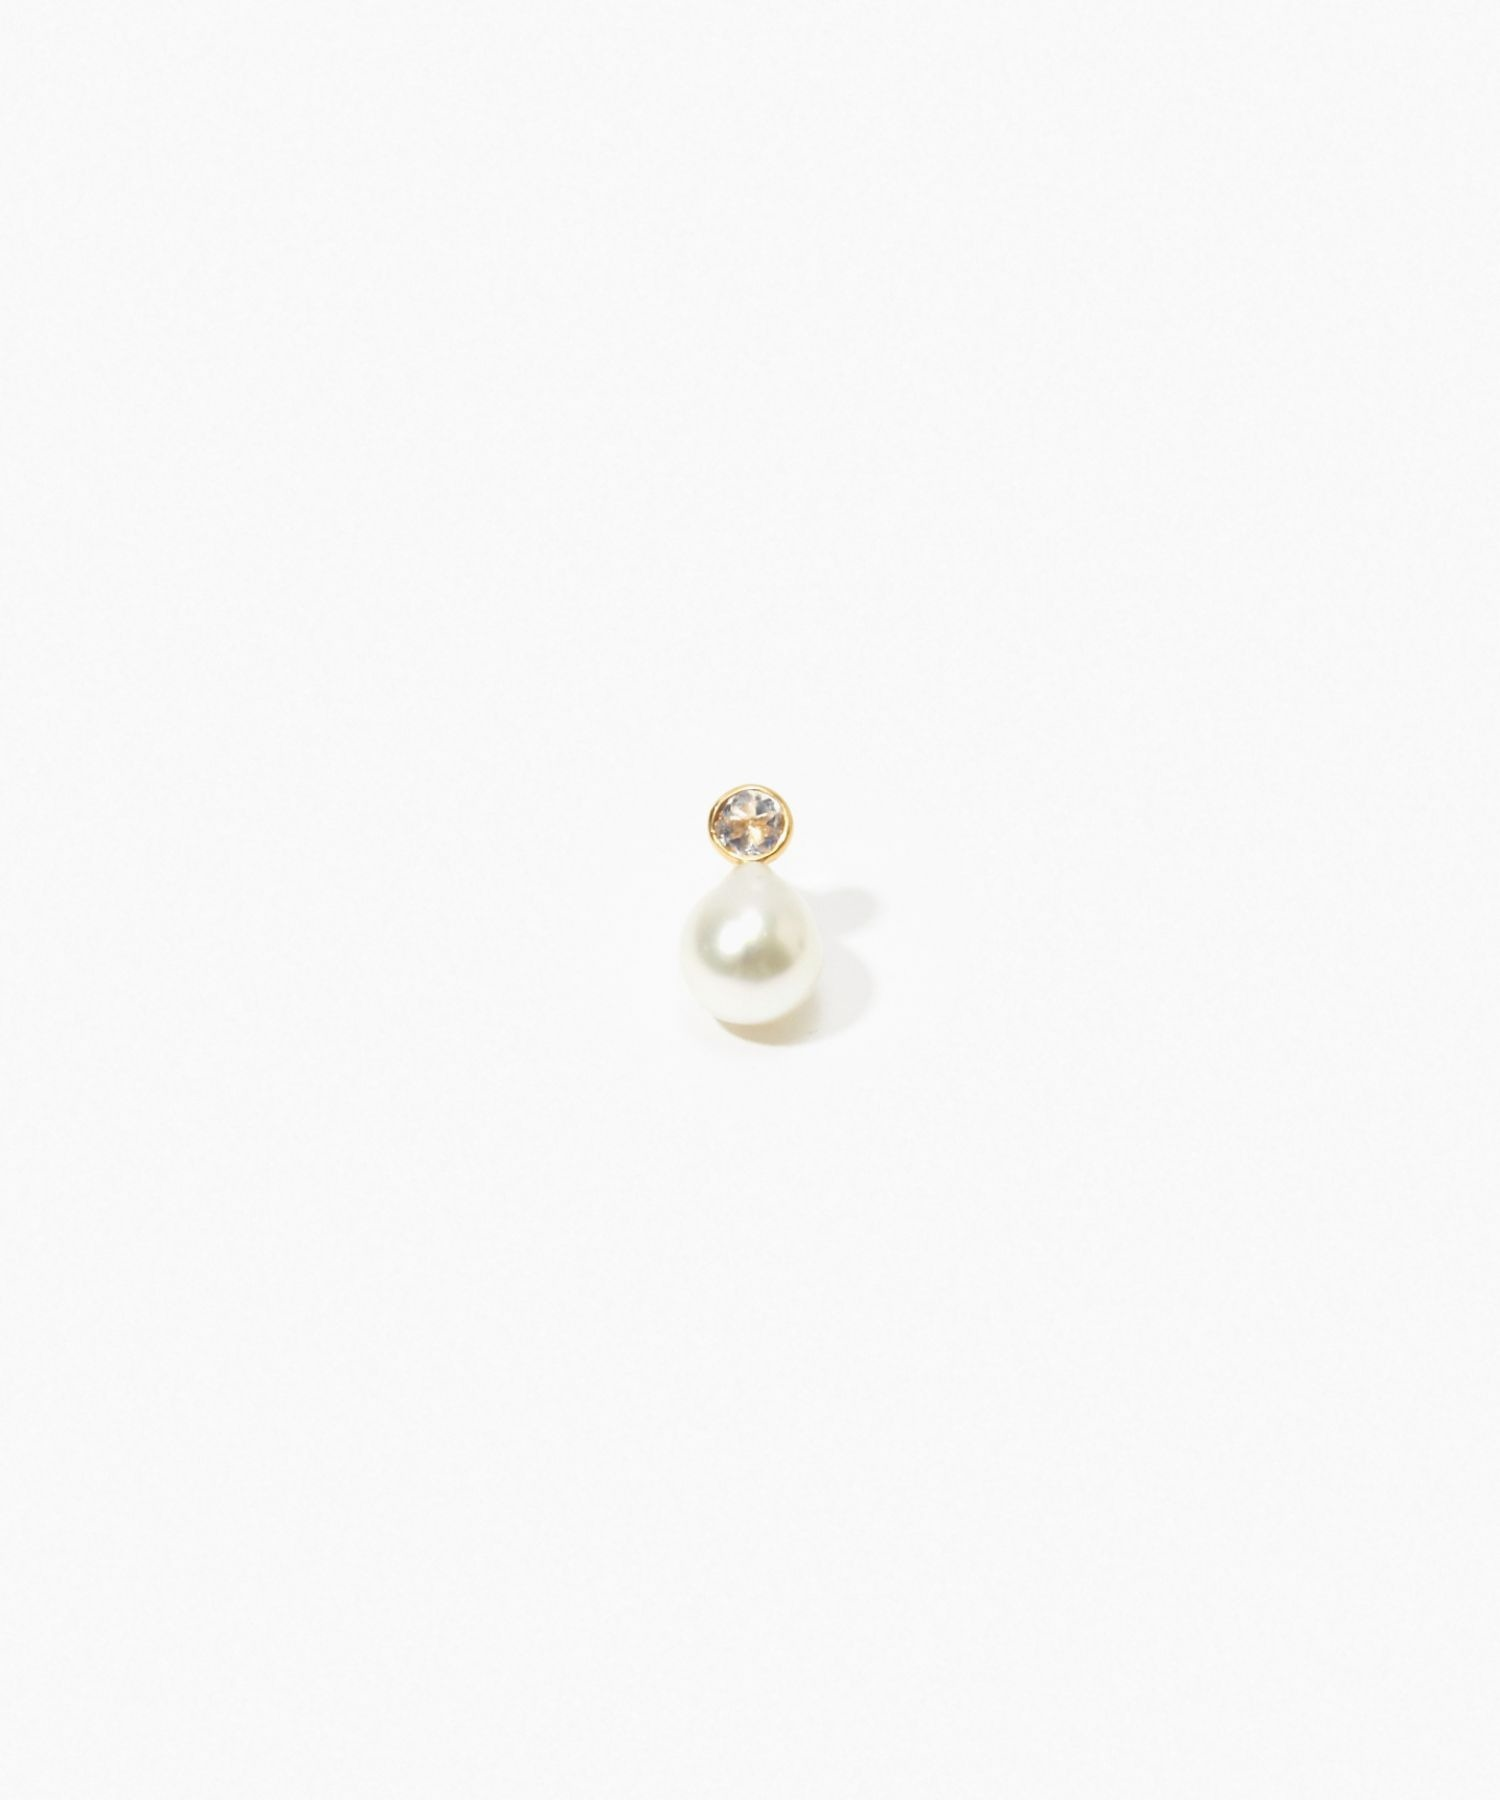 [philia] K10 akoya and round rainbow moonstone stud pierced earring